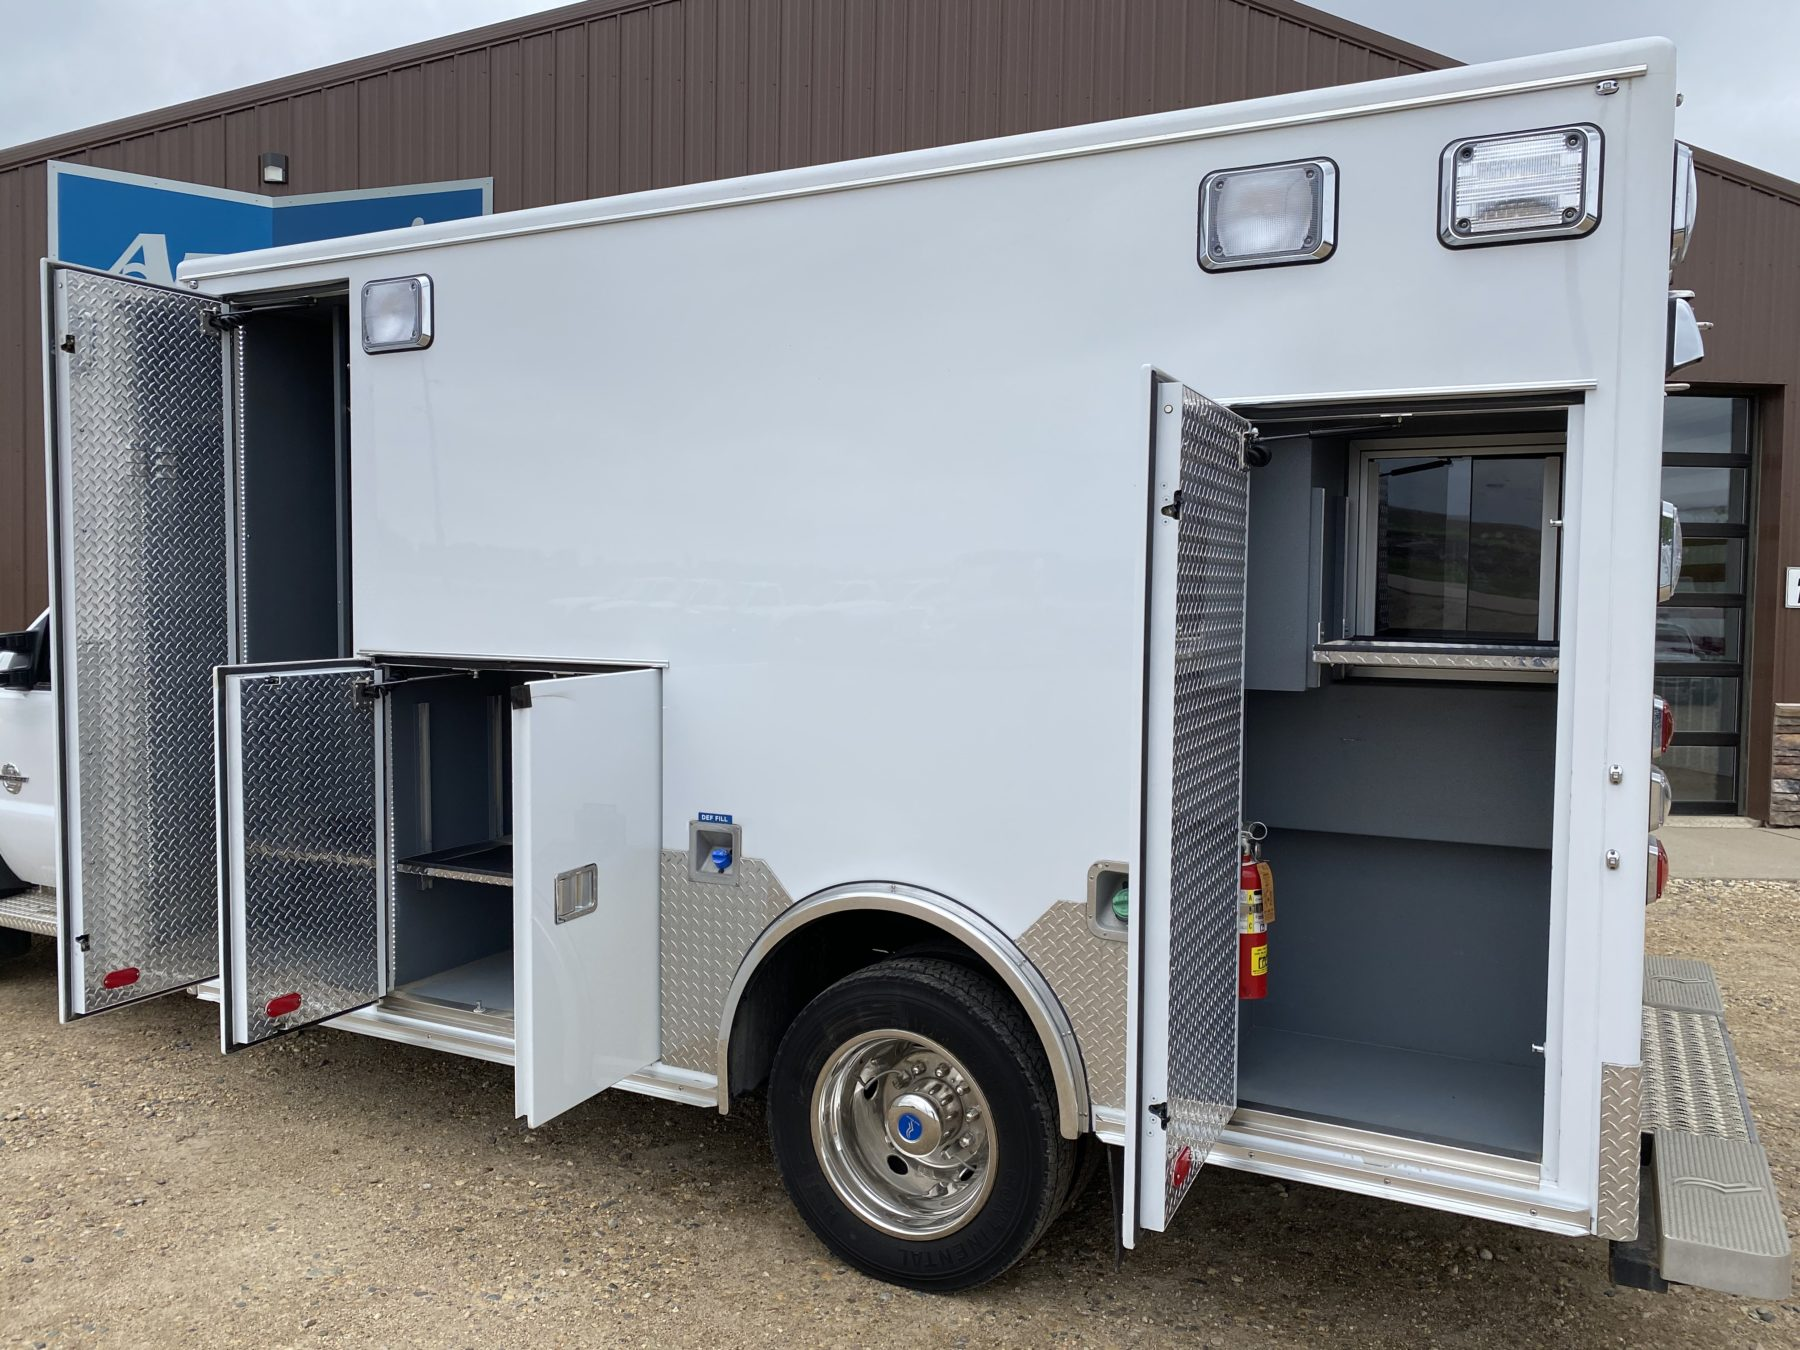 2012 Ford F450 Heavy Duty Ambulance For Sale – Picture 6